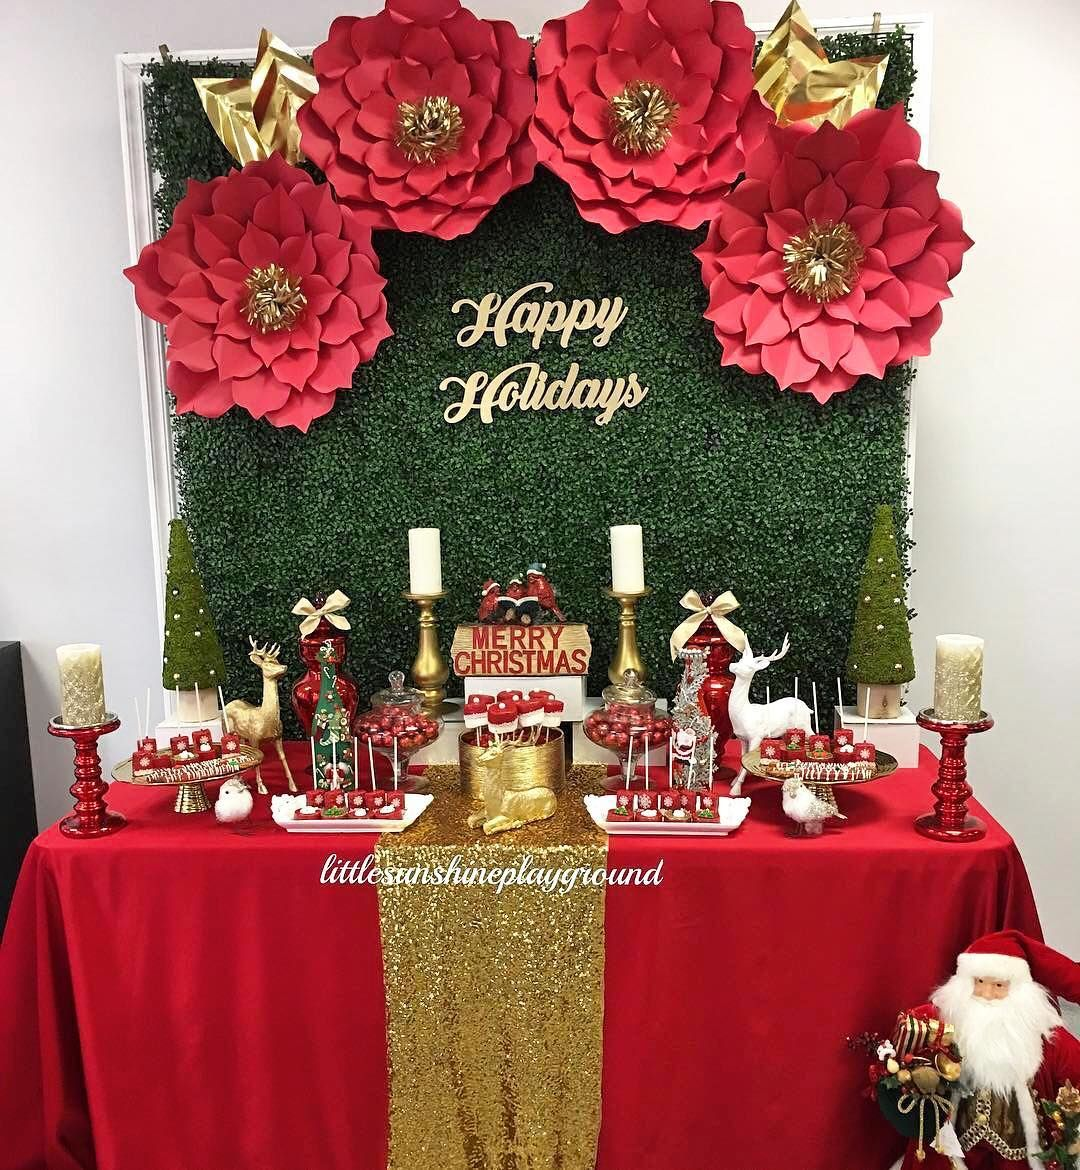 Pin de mely aragon en xmas party - Decoracion fiesta navidad ...